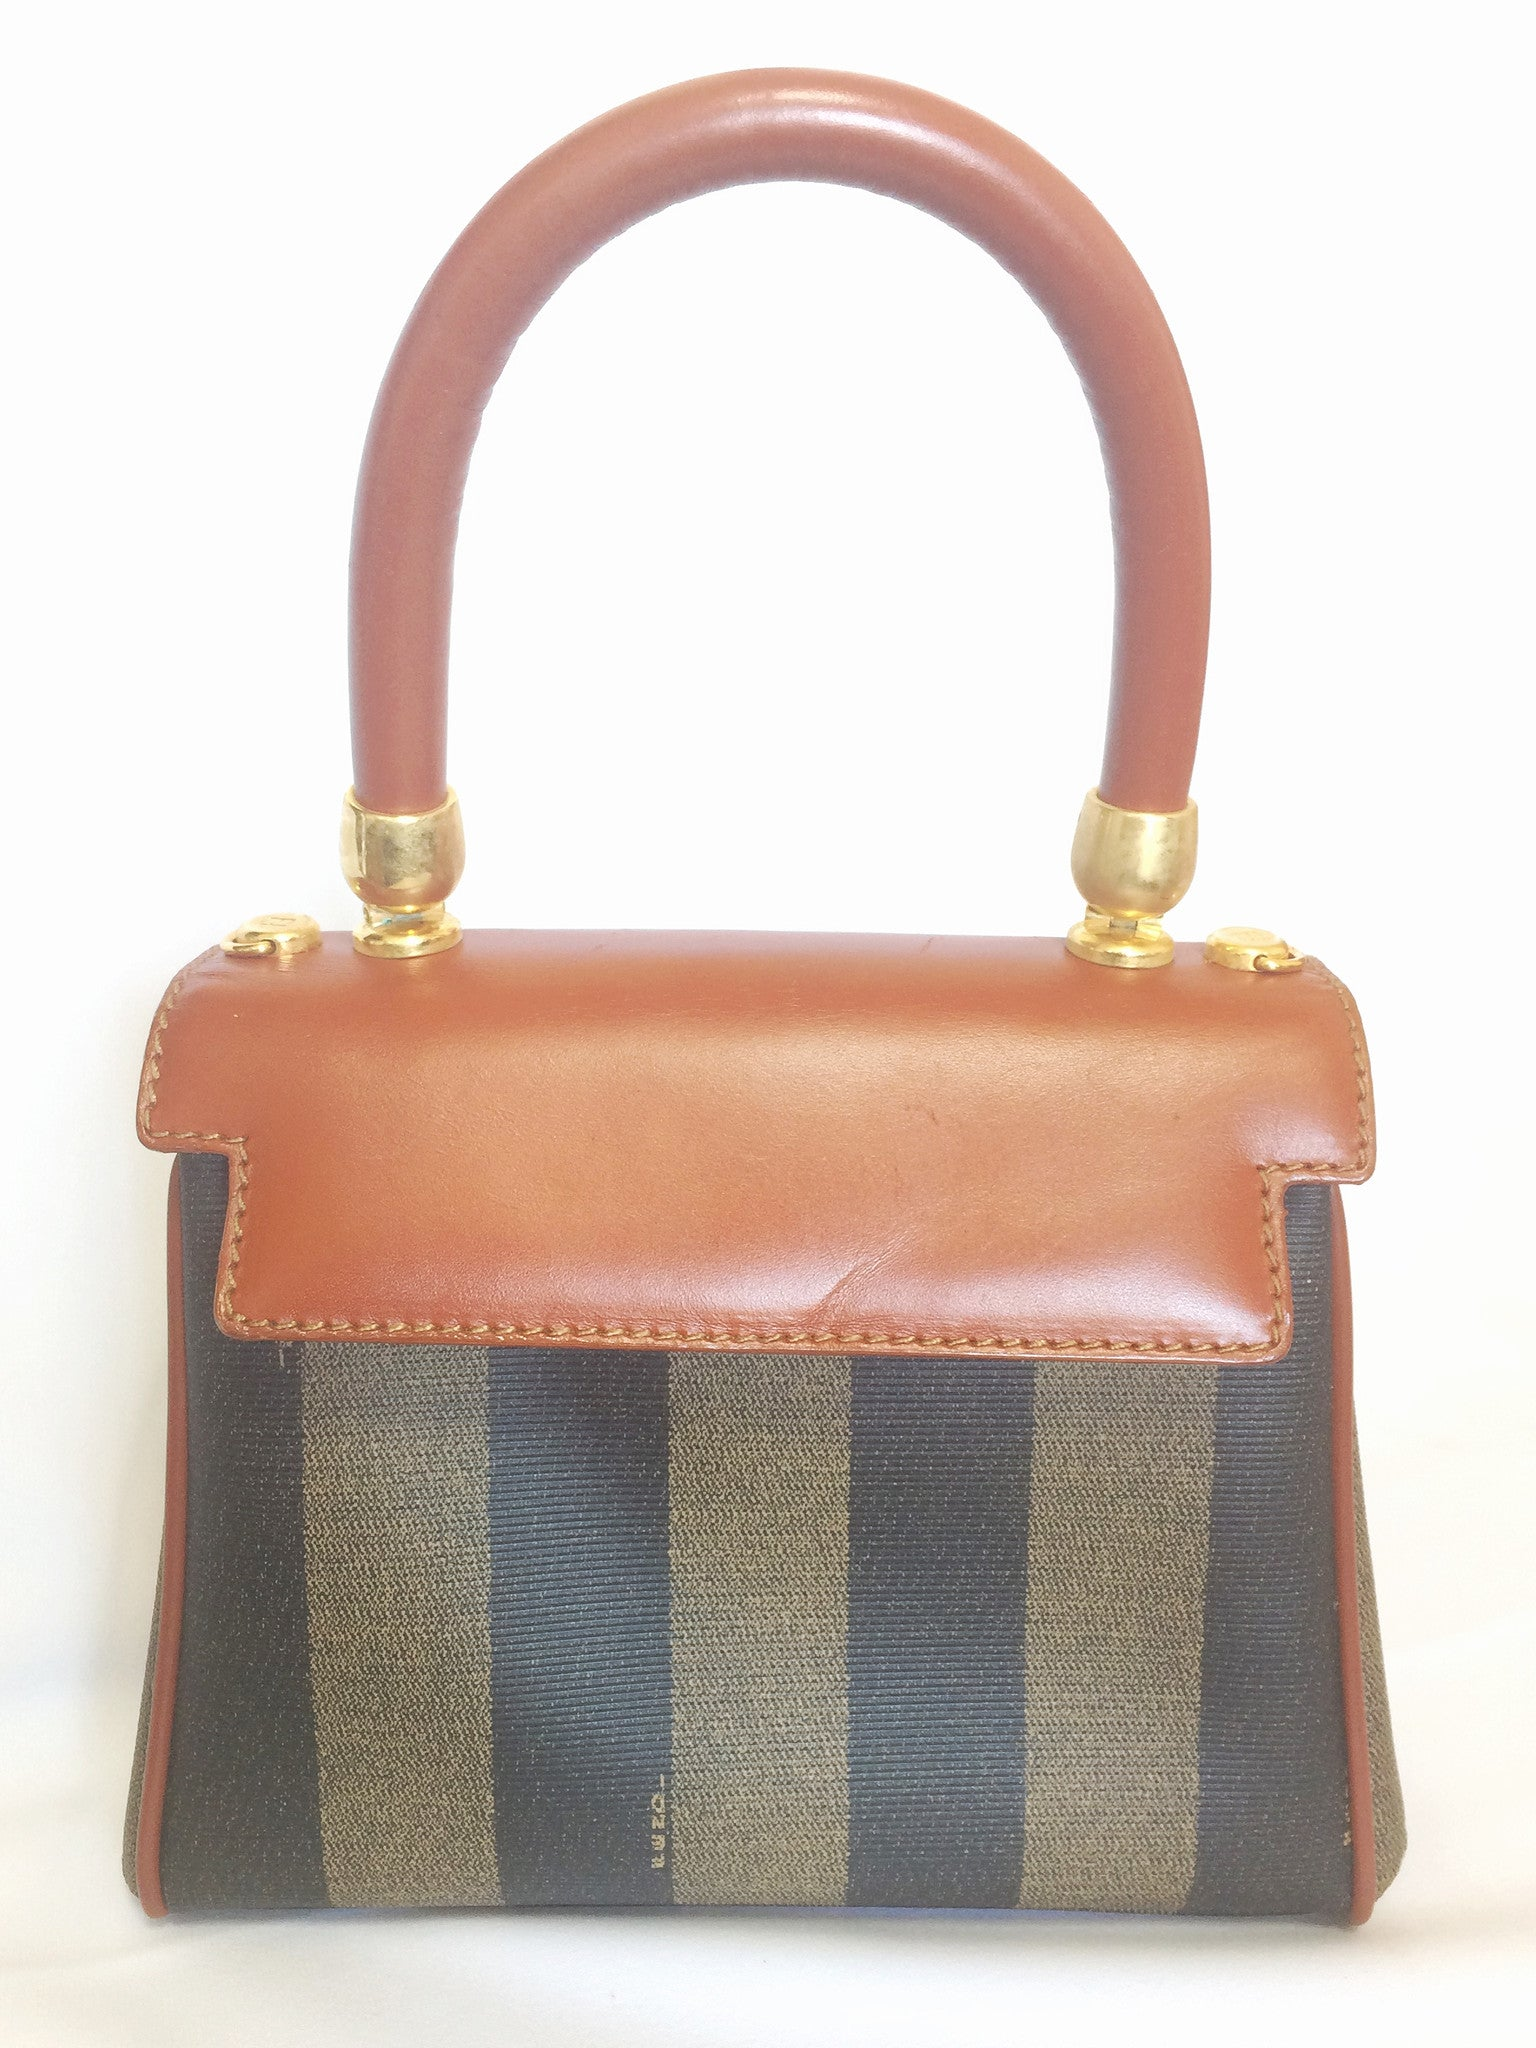 Vintage FENDI kelly bag style mini handbag in classic pecan stripes and brown leather handle. Classic vintage bag